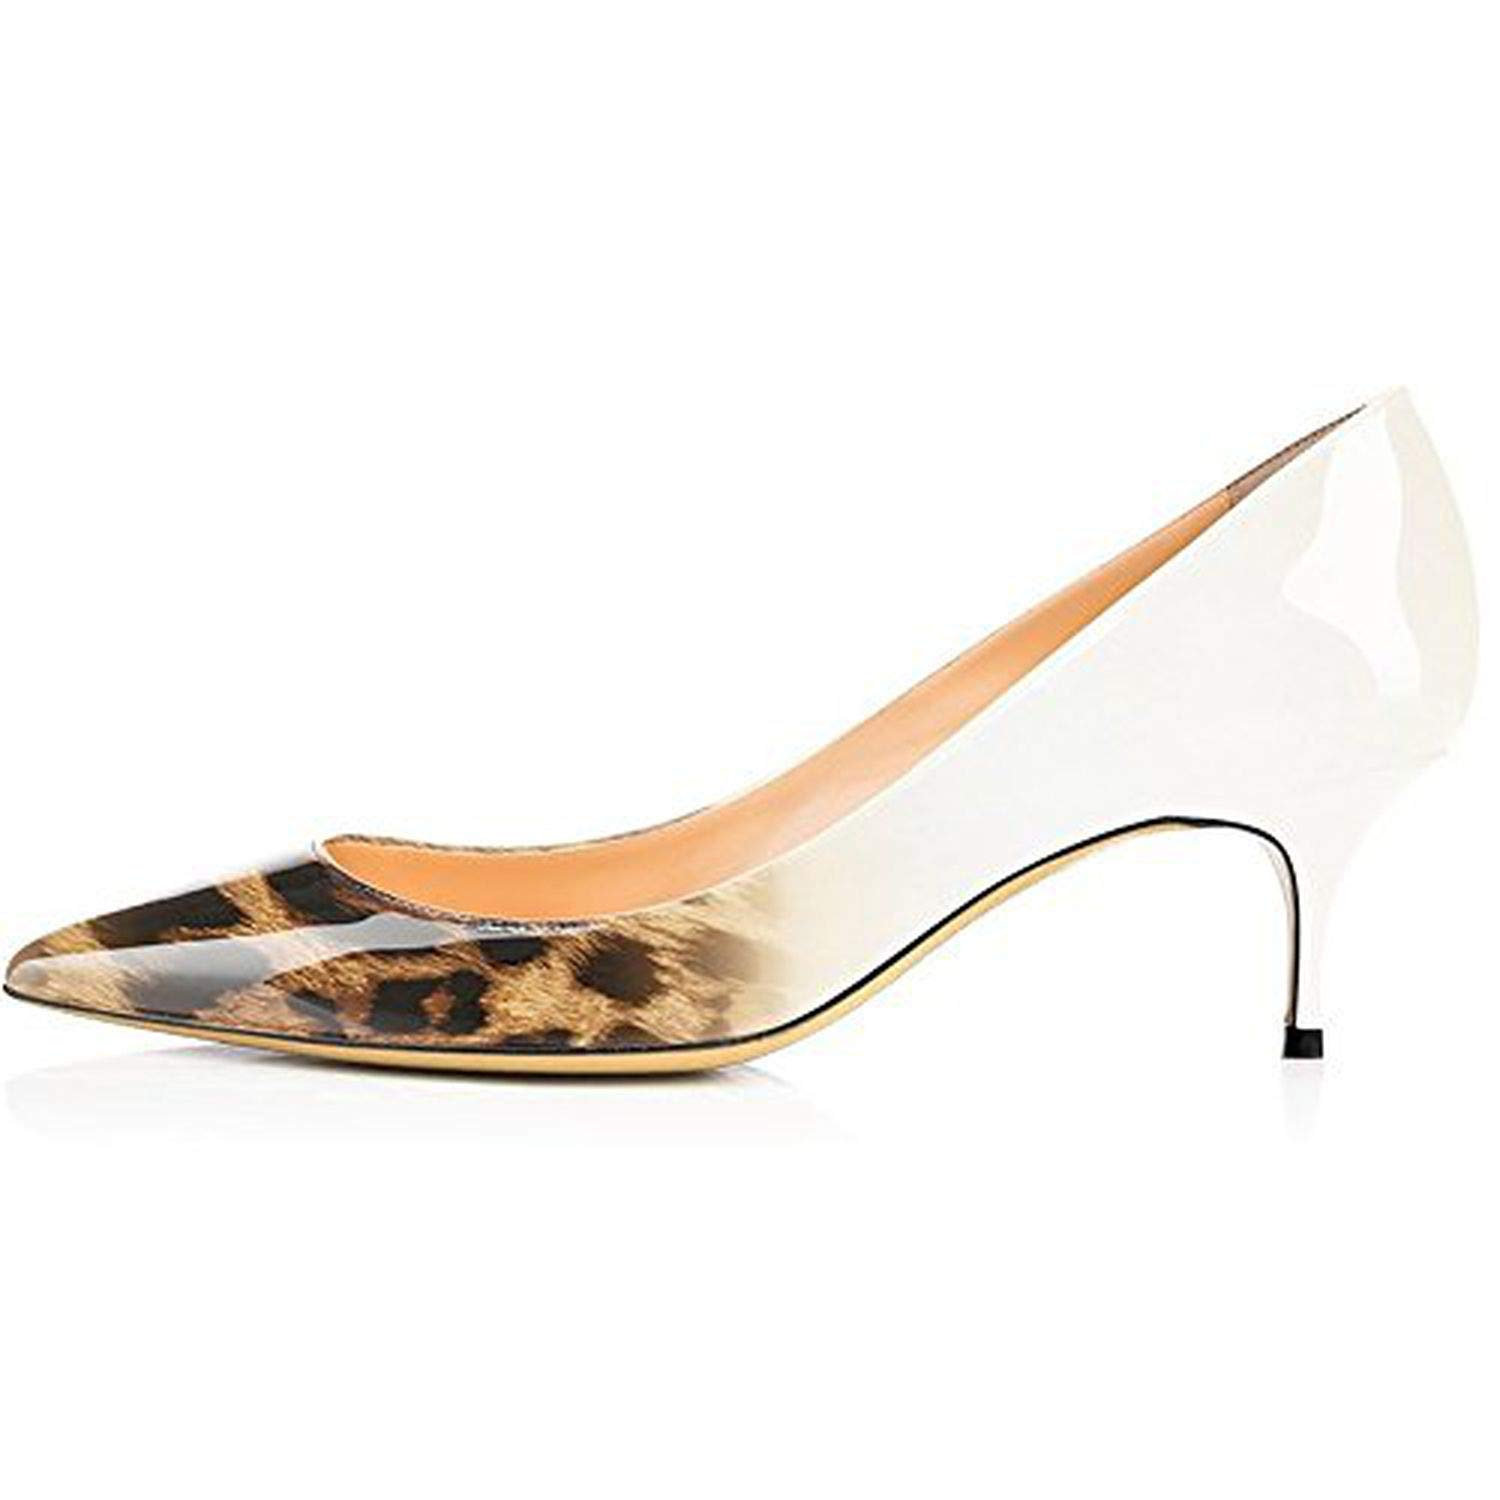 Brown Leopard Youthern Woman Heels Big Size Pumps shoes Sexy Pointed Toe High Heels Wedding Bridal shoes